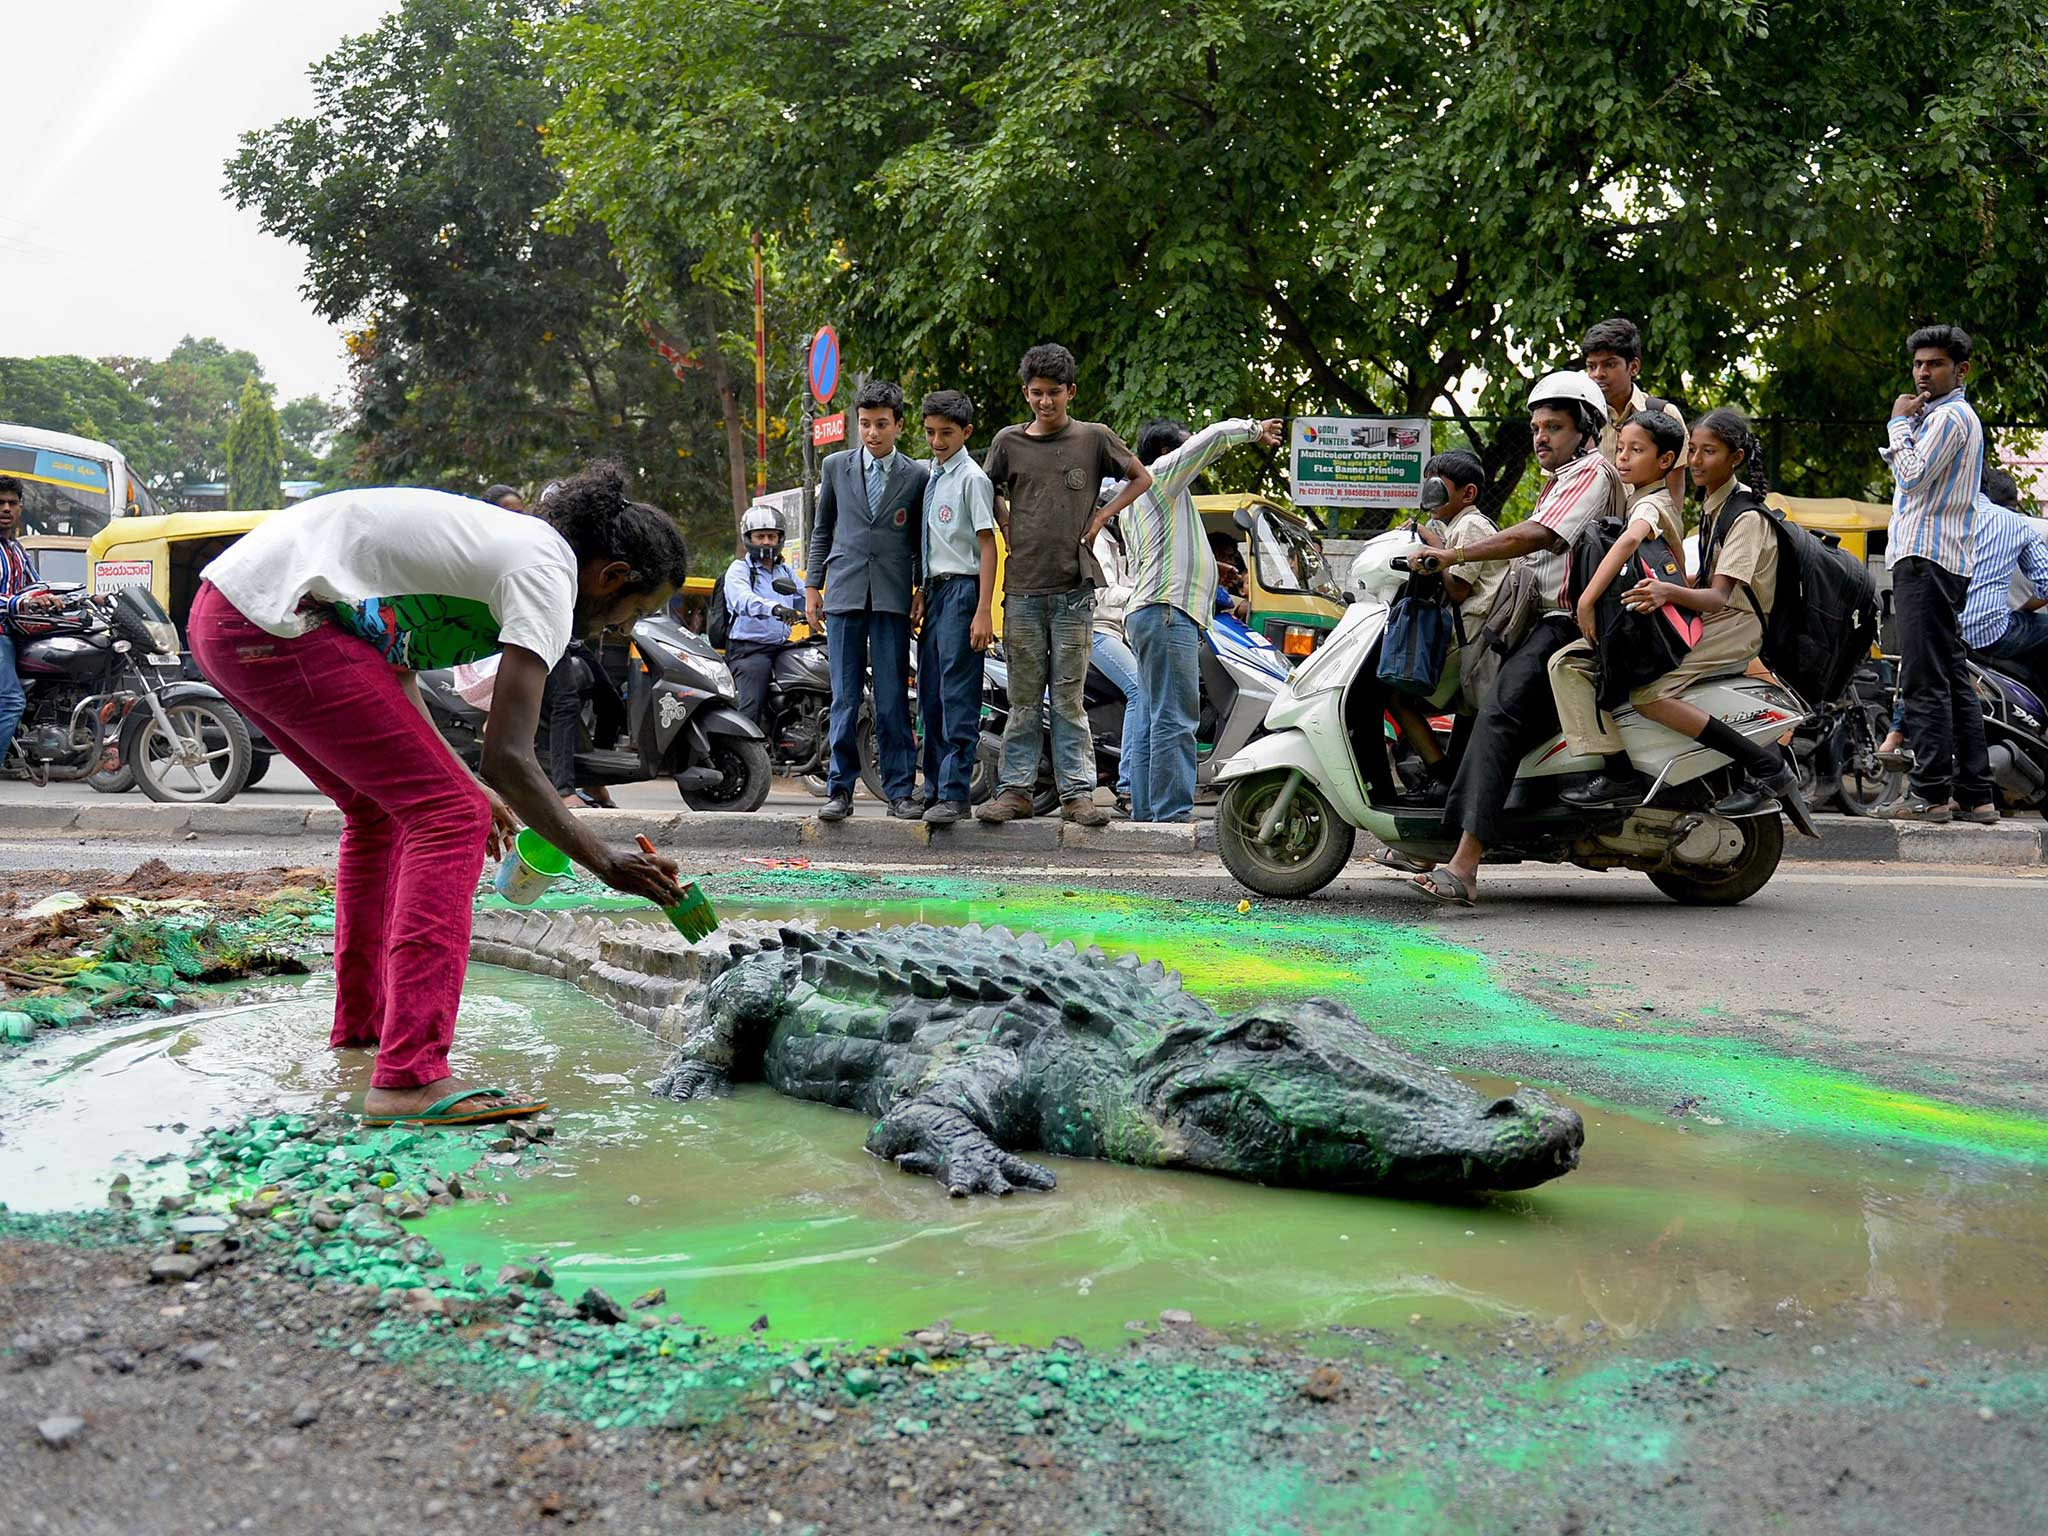 alligator hindu personals The largest species of crocodile is the saltwater crocodile, found in eastern india, northern australia, throughout south-east asia, and in the surrounding waters the largest crocodile ever held in captivity is an estuarine–siamese hybrid named yai (thai: ใหญ่, meaning big) (born 10 june 1972) at the samutprakarn crocodile farm and zoo.